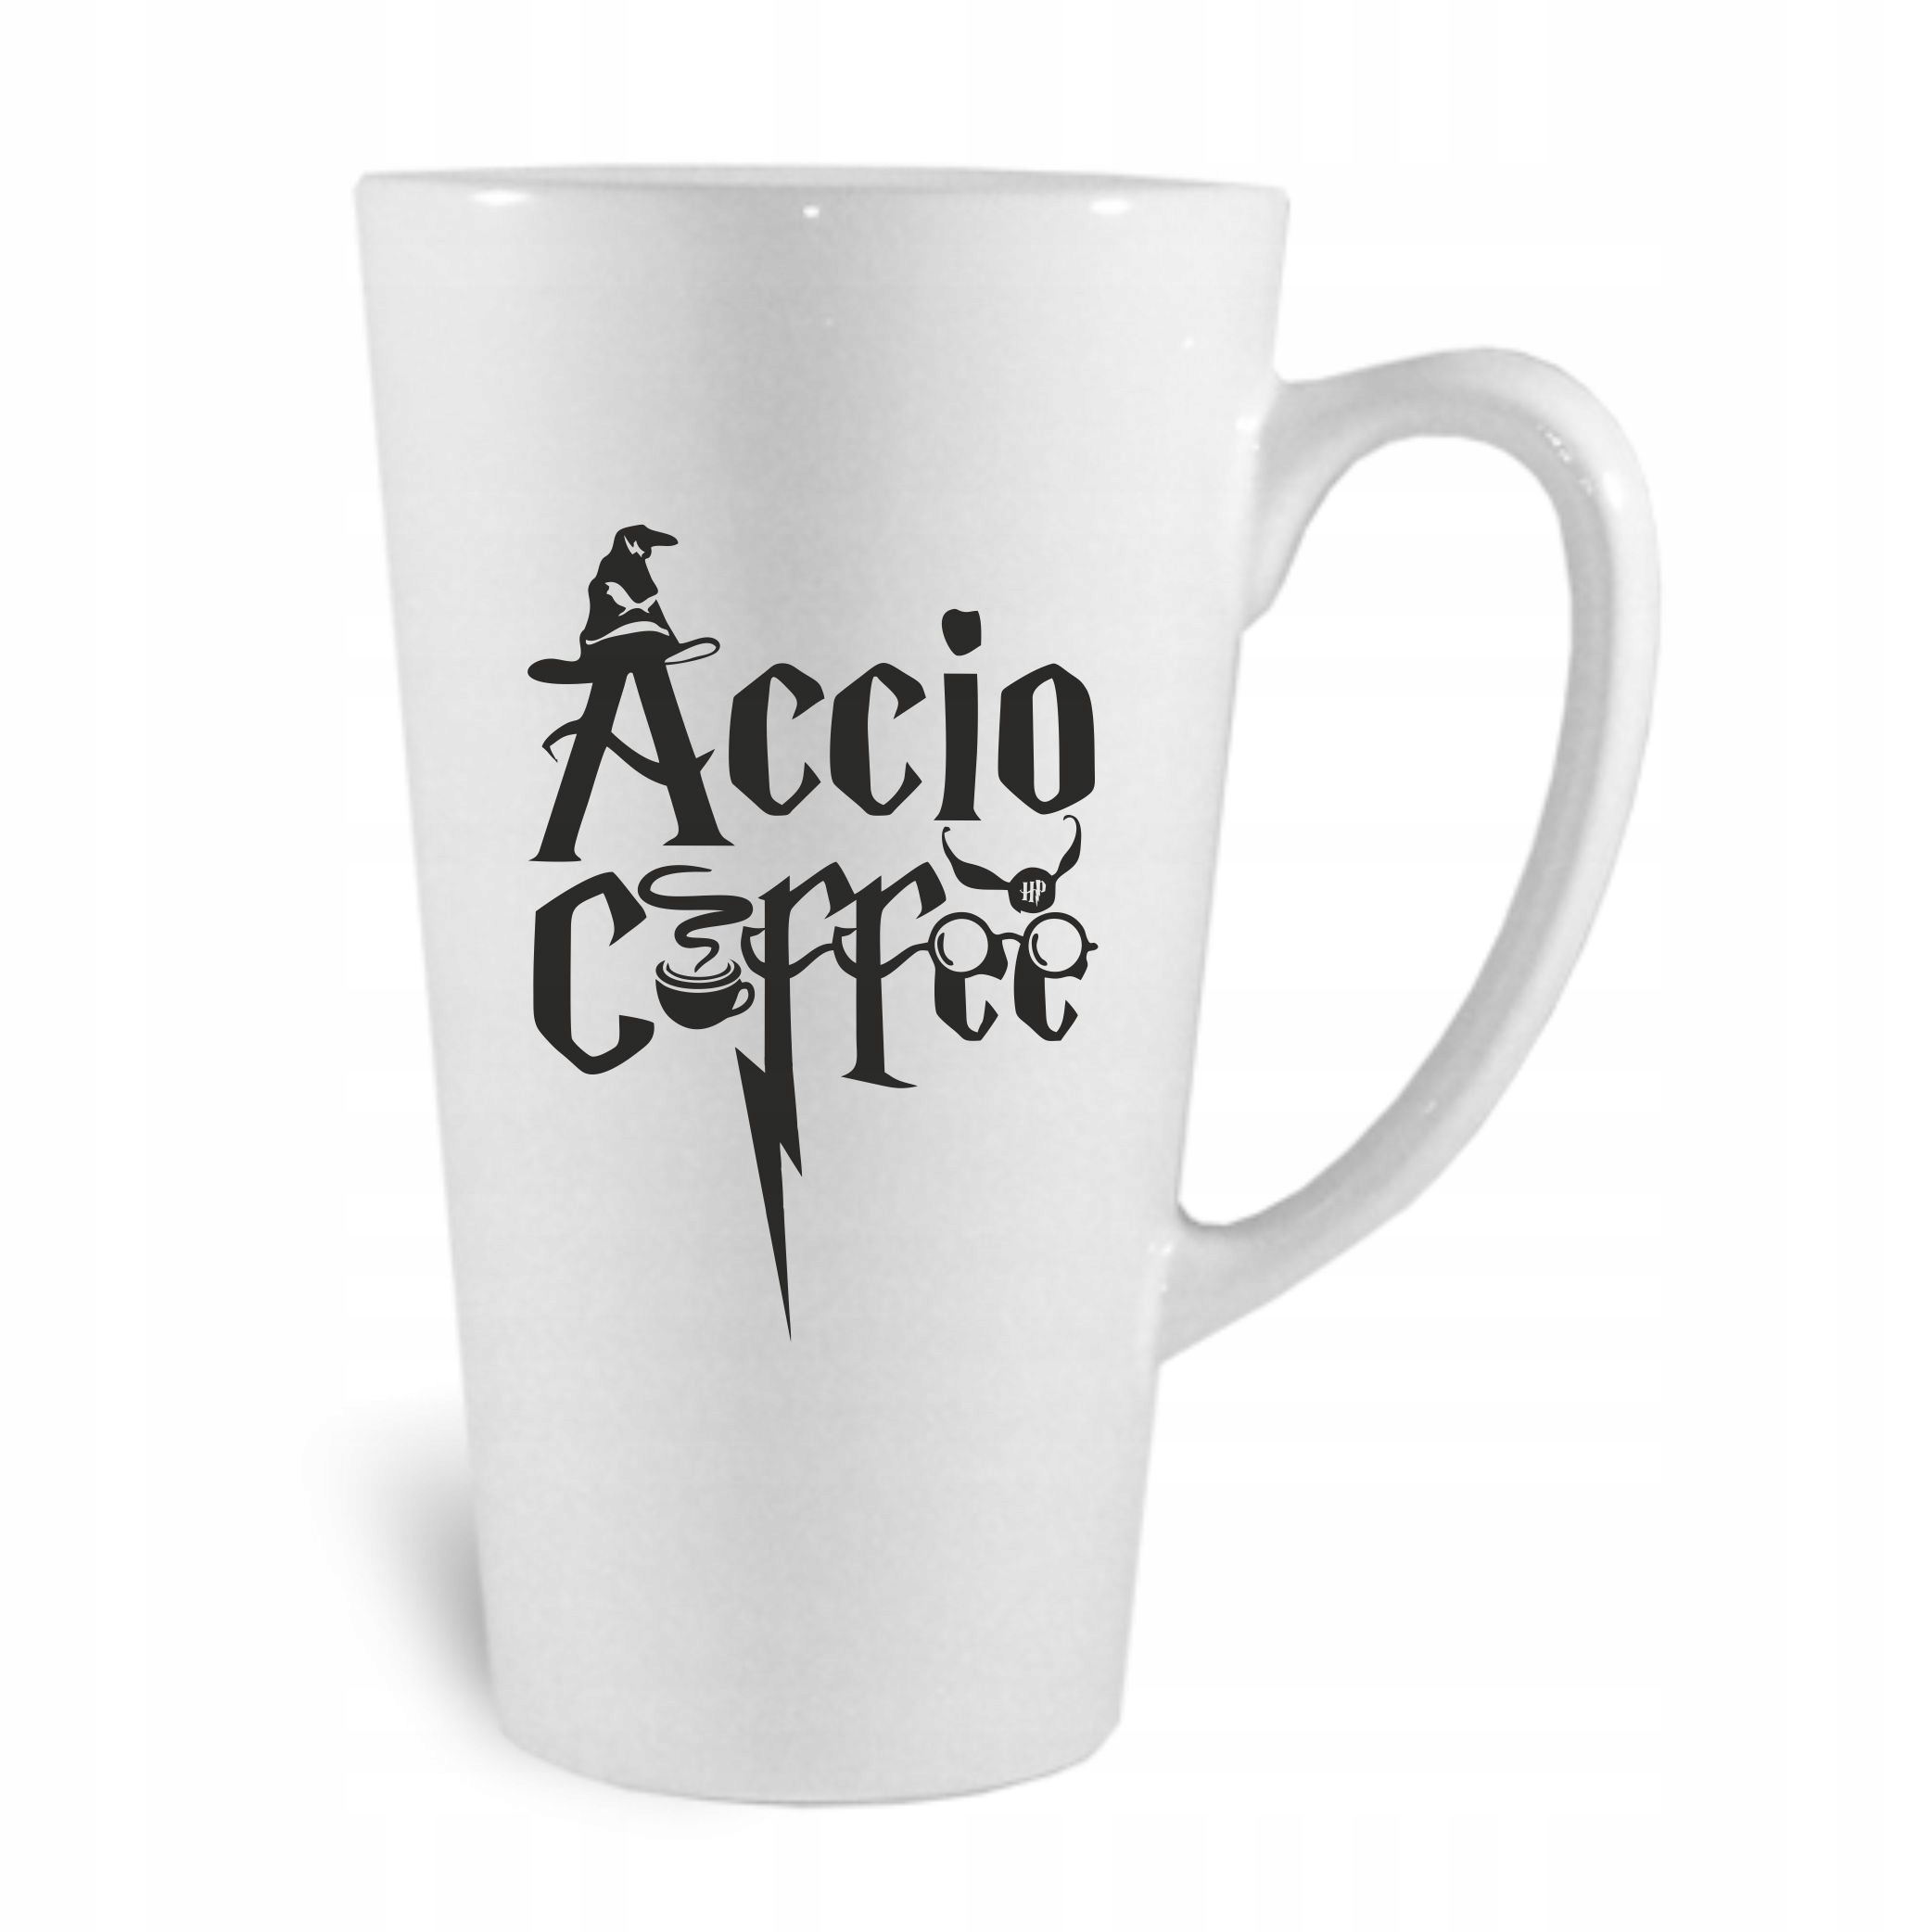 Item A big MUG of LATTE Accio Coffee HARRY POTTER ! LUX